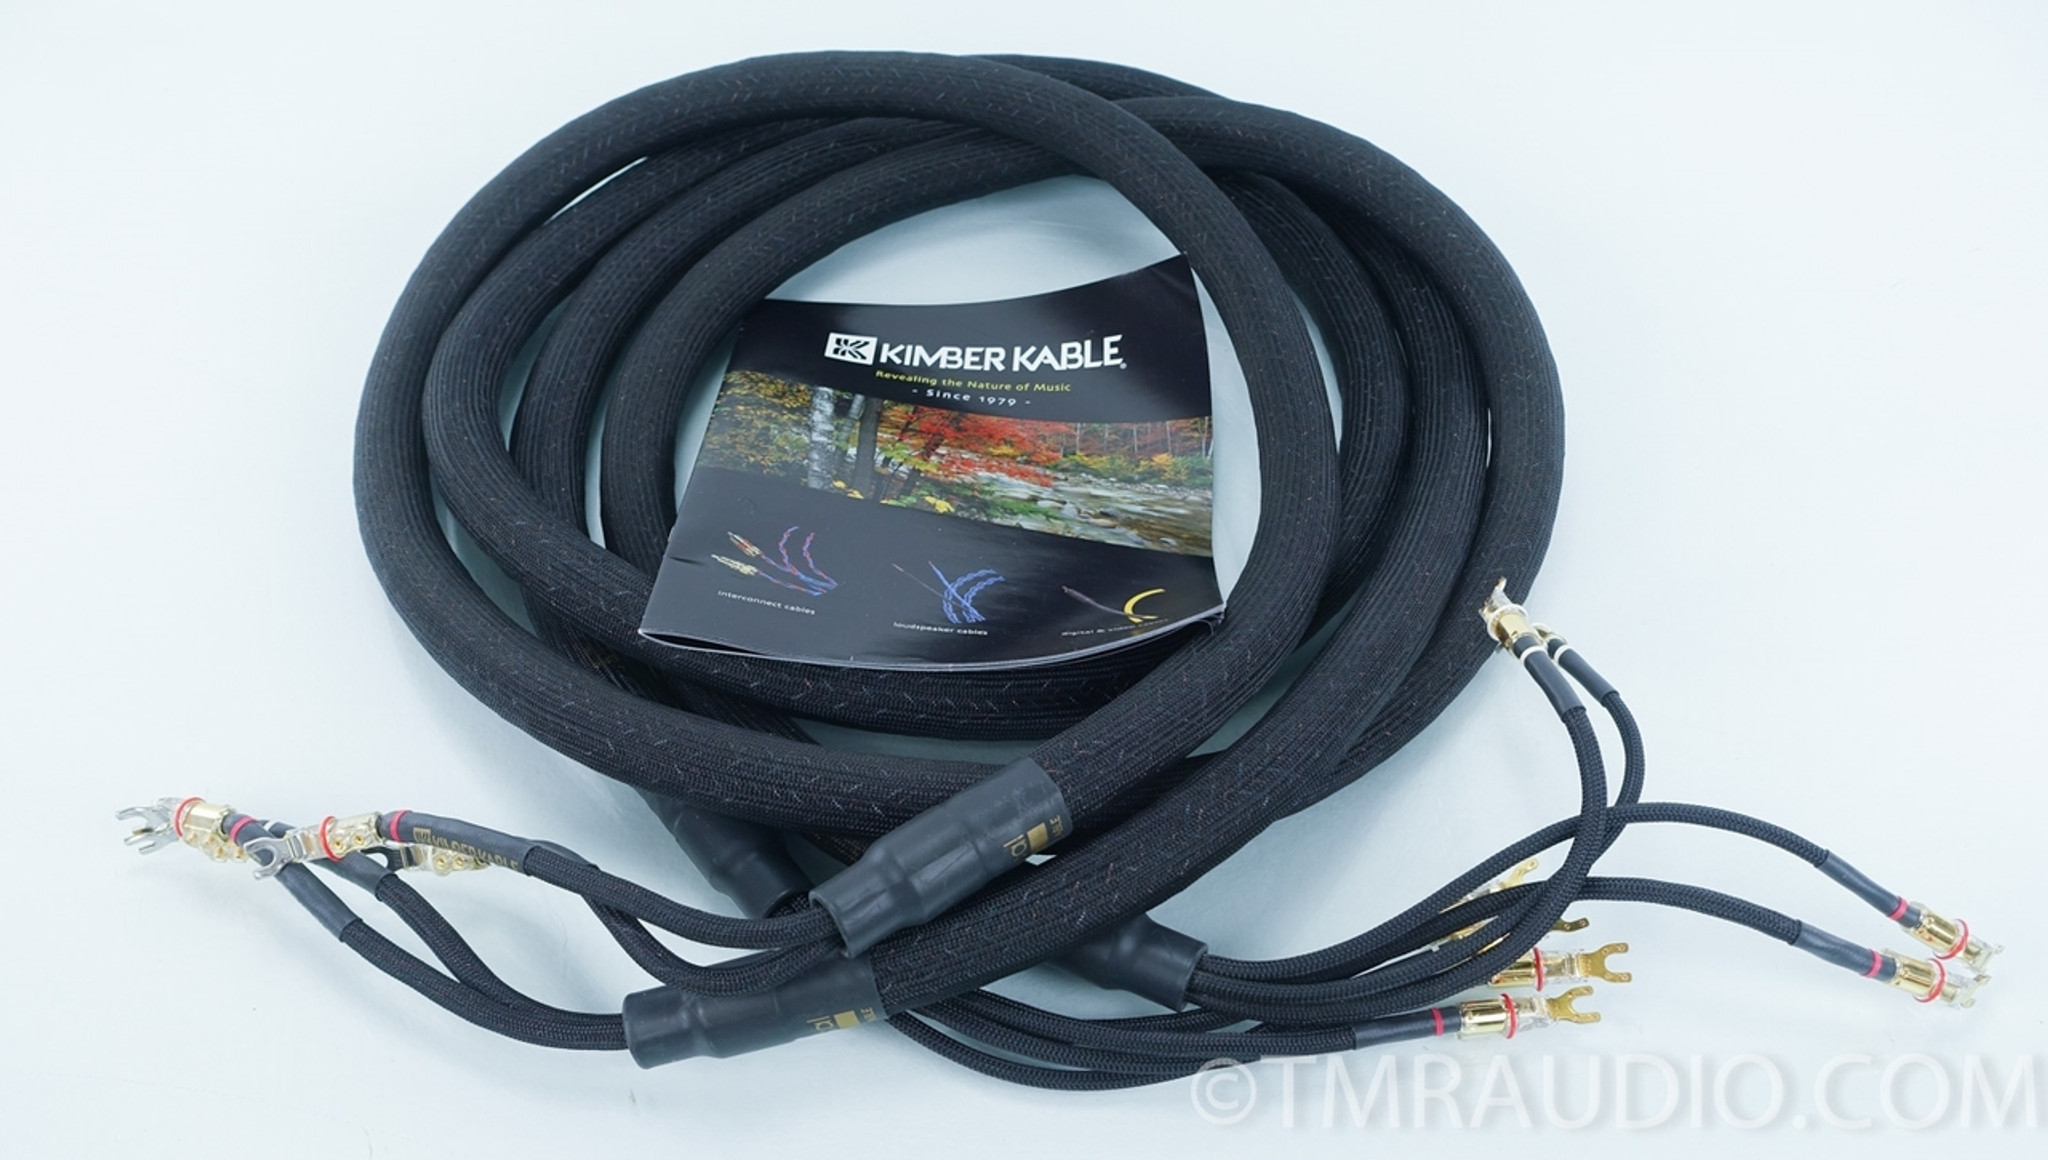 Kimber Kable Bifocal XL Bi-wire Speaker Cables; 10ft Pair; Upgraded ...